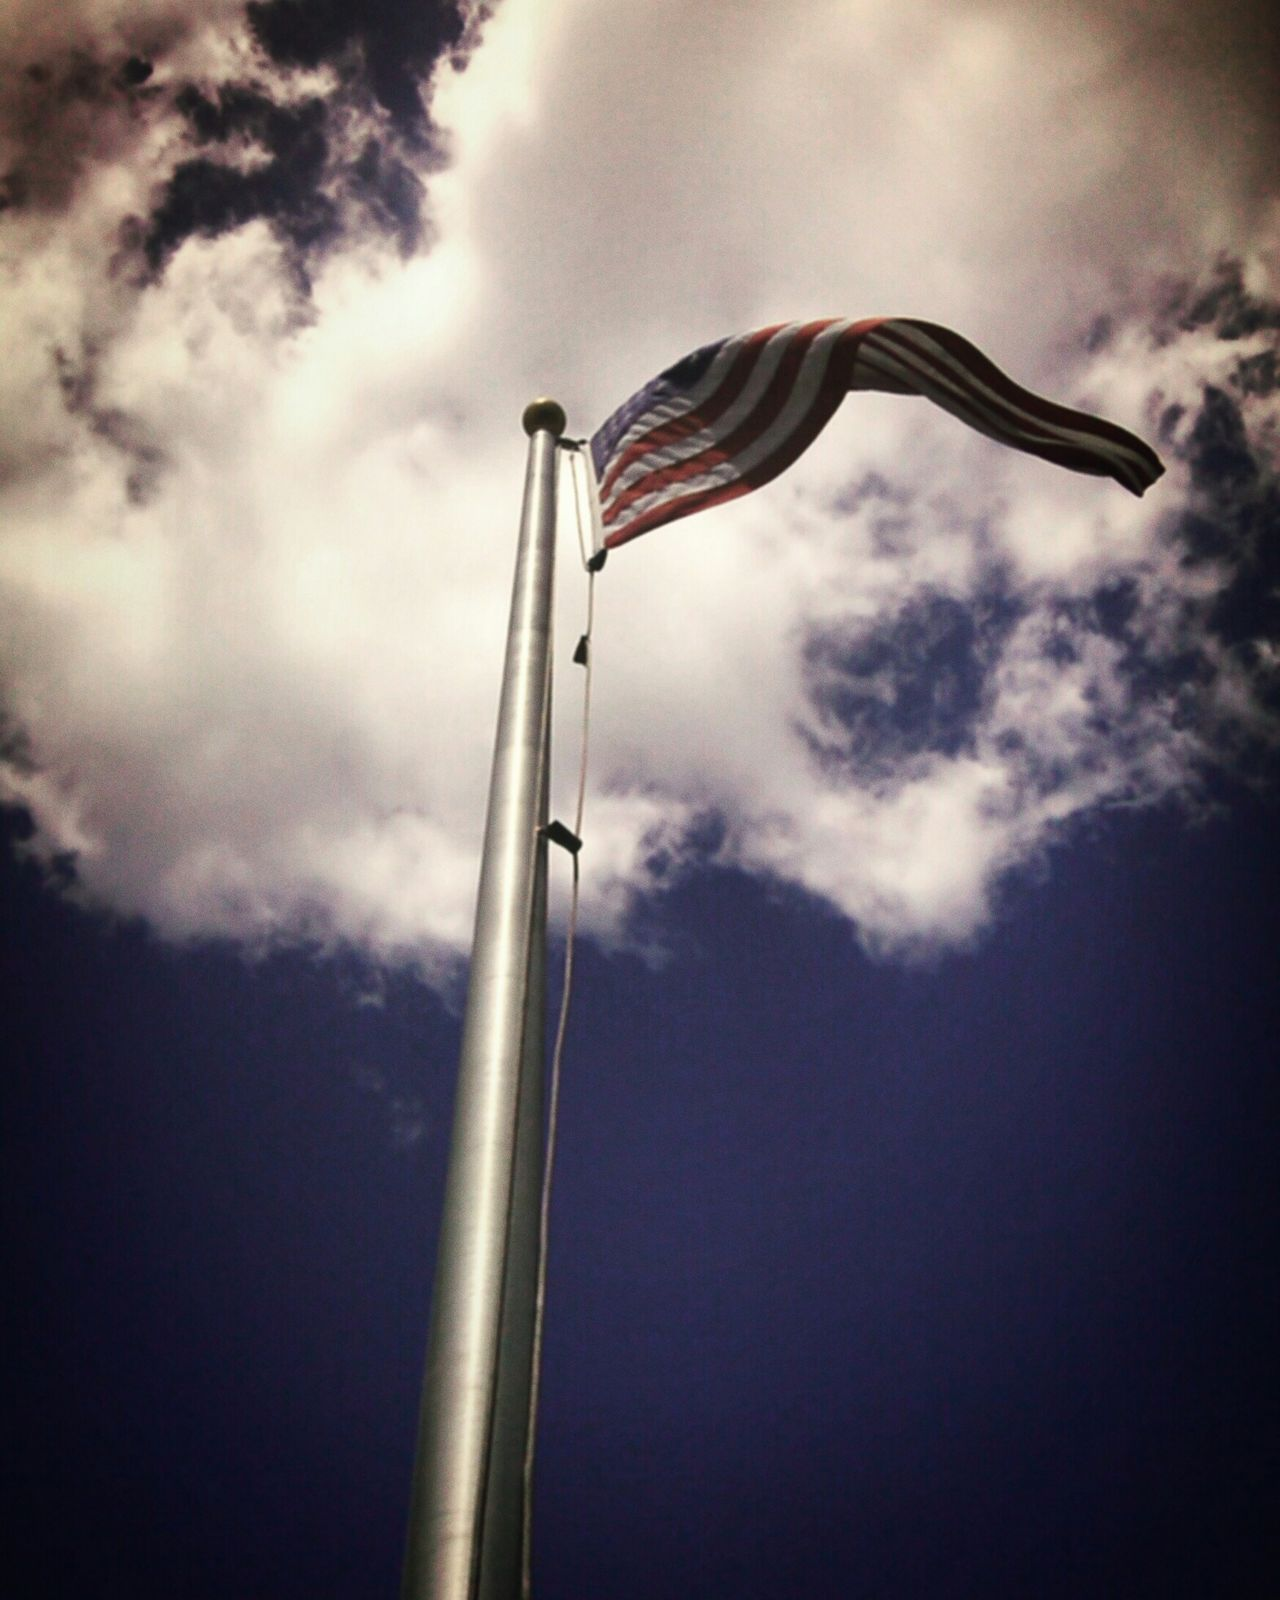 The American Flag moving with the wind 🍃☀ Looking At The Flag